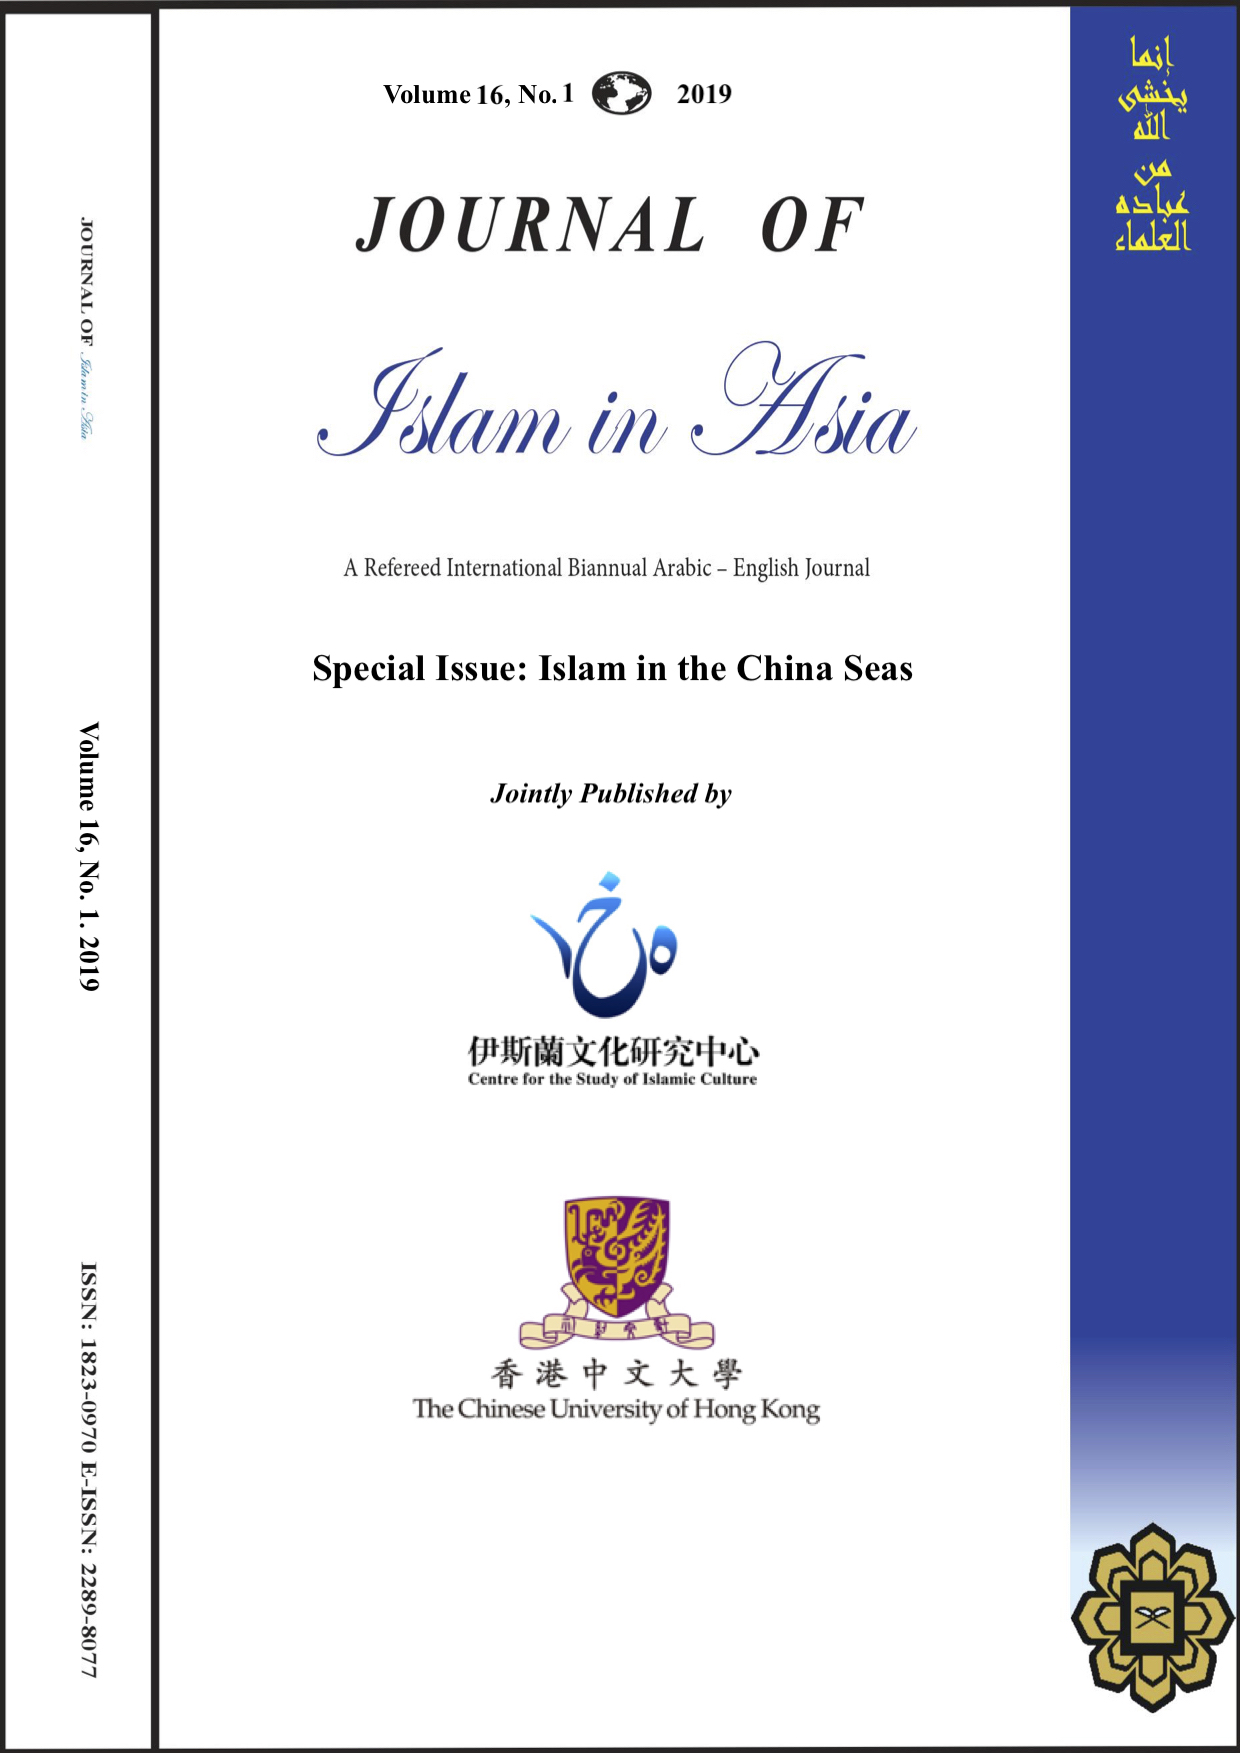 View Vol. 16 No. 1: Special Issue: Islam in the China Seas, (2019)